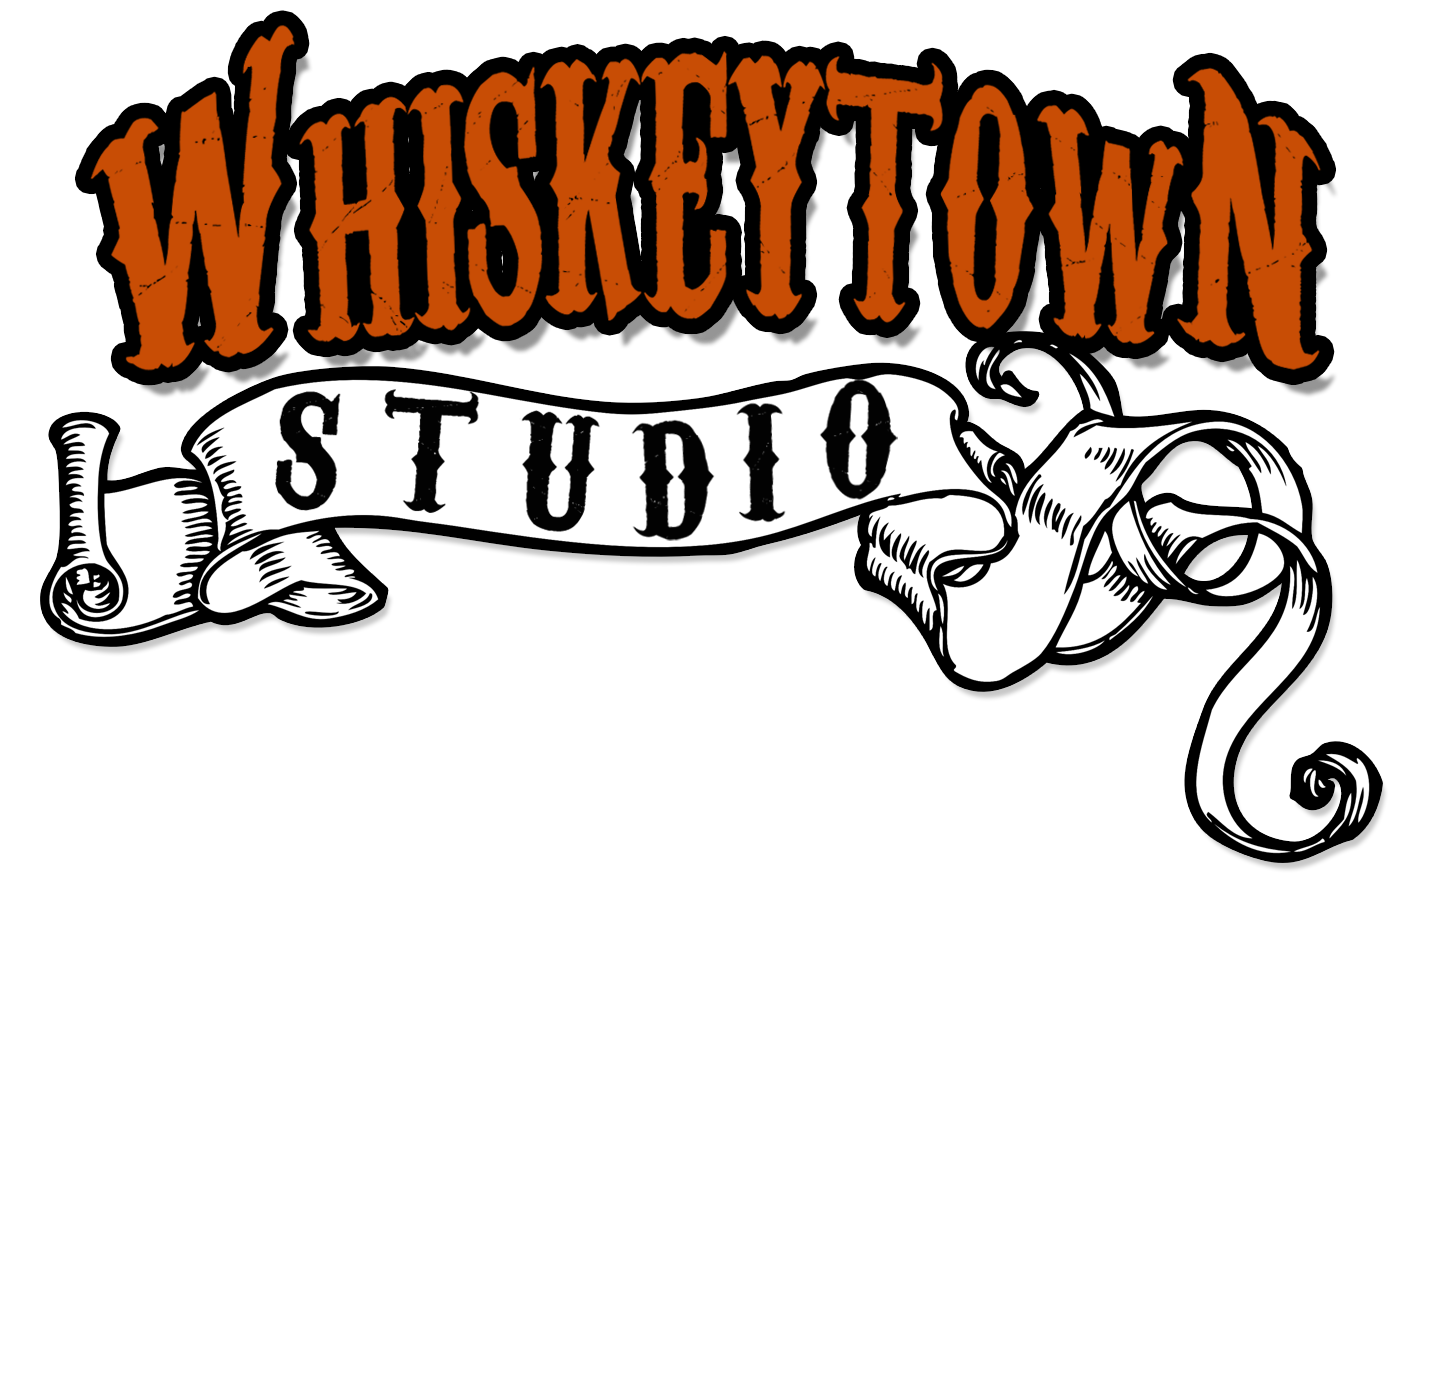 Whiskeytown studio